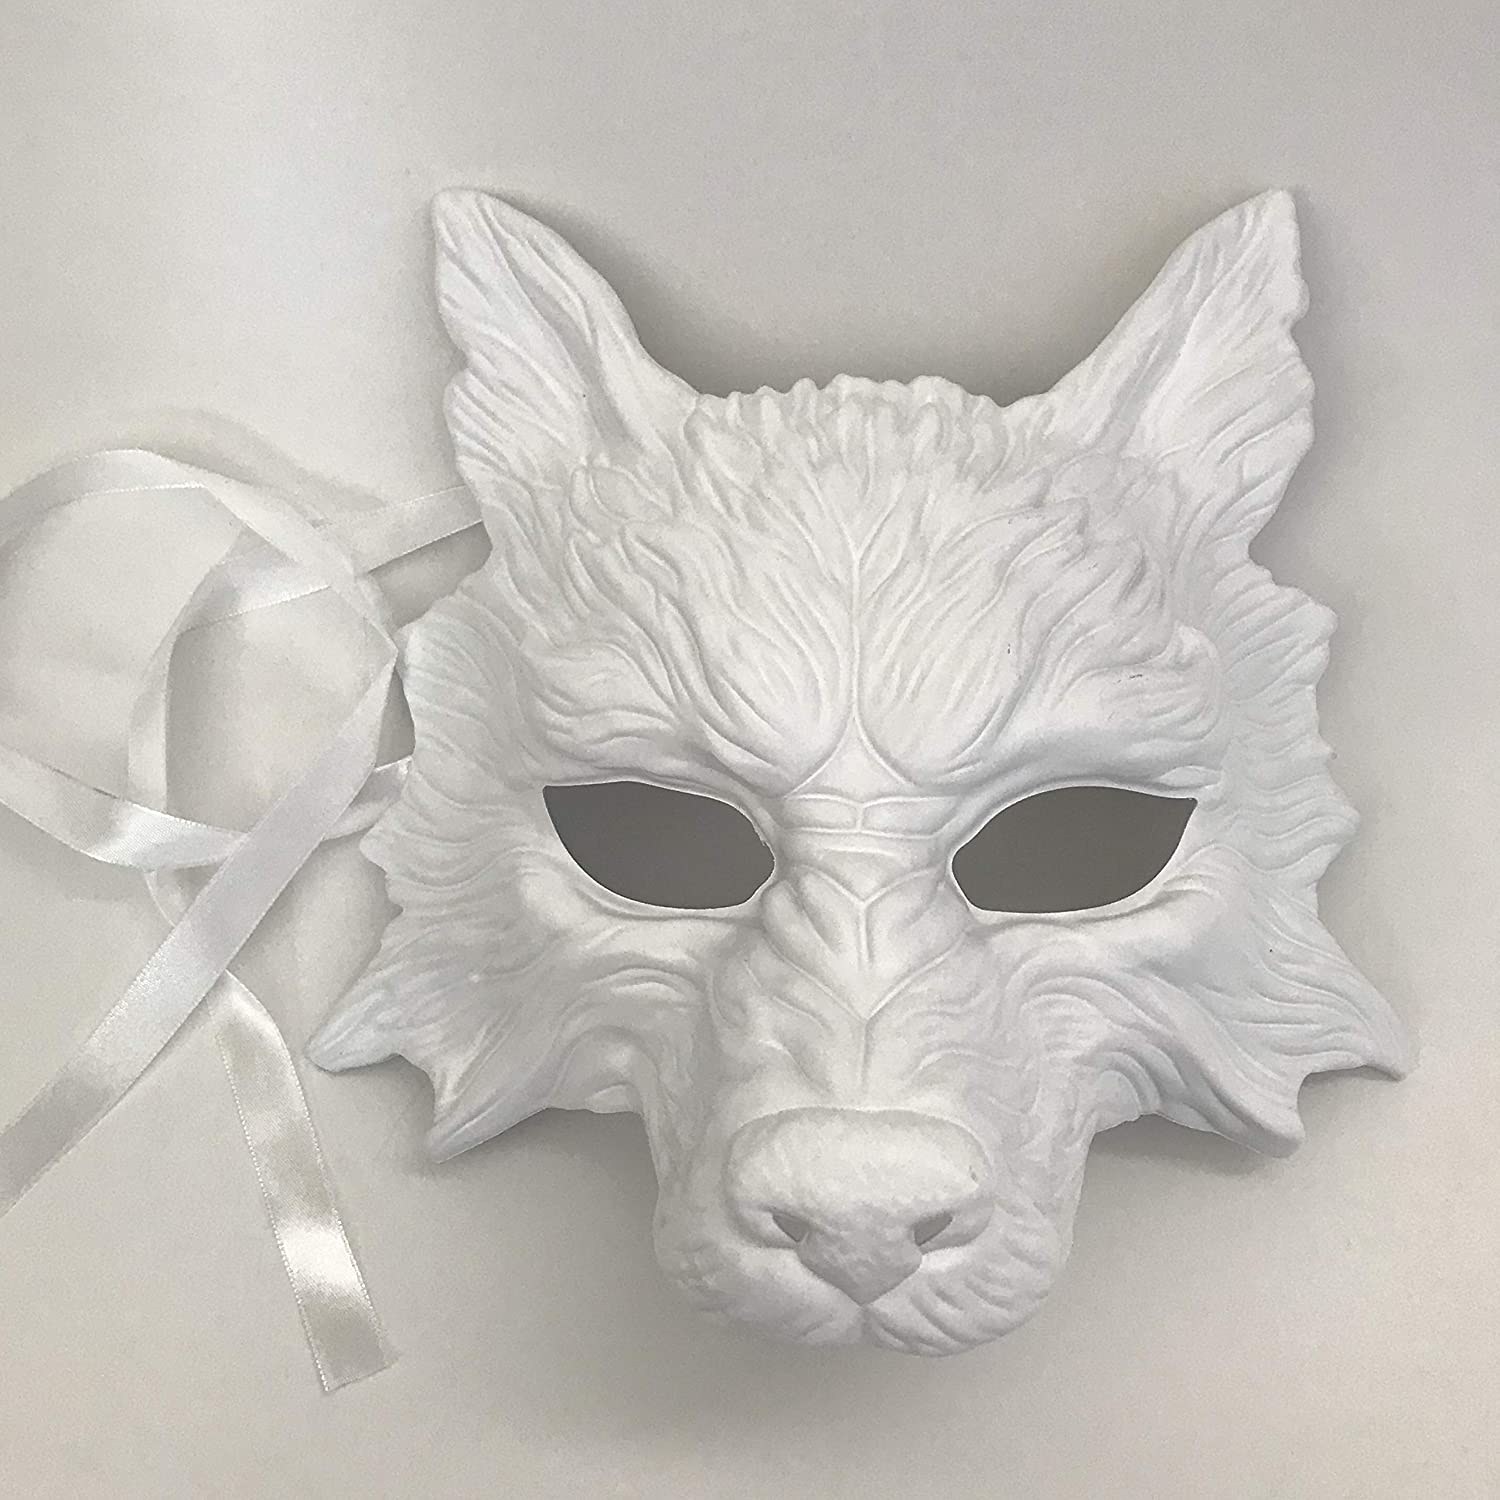 The Wolf Mask is Done | Wolf mask, Paper mache mask, Paper mache | 1500x1500